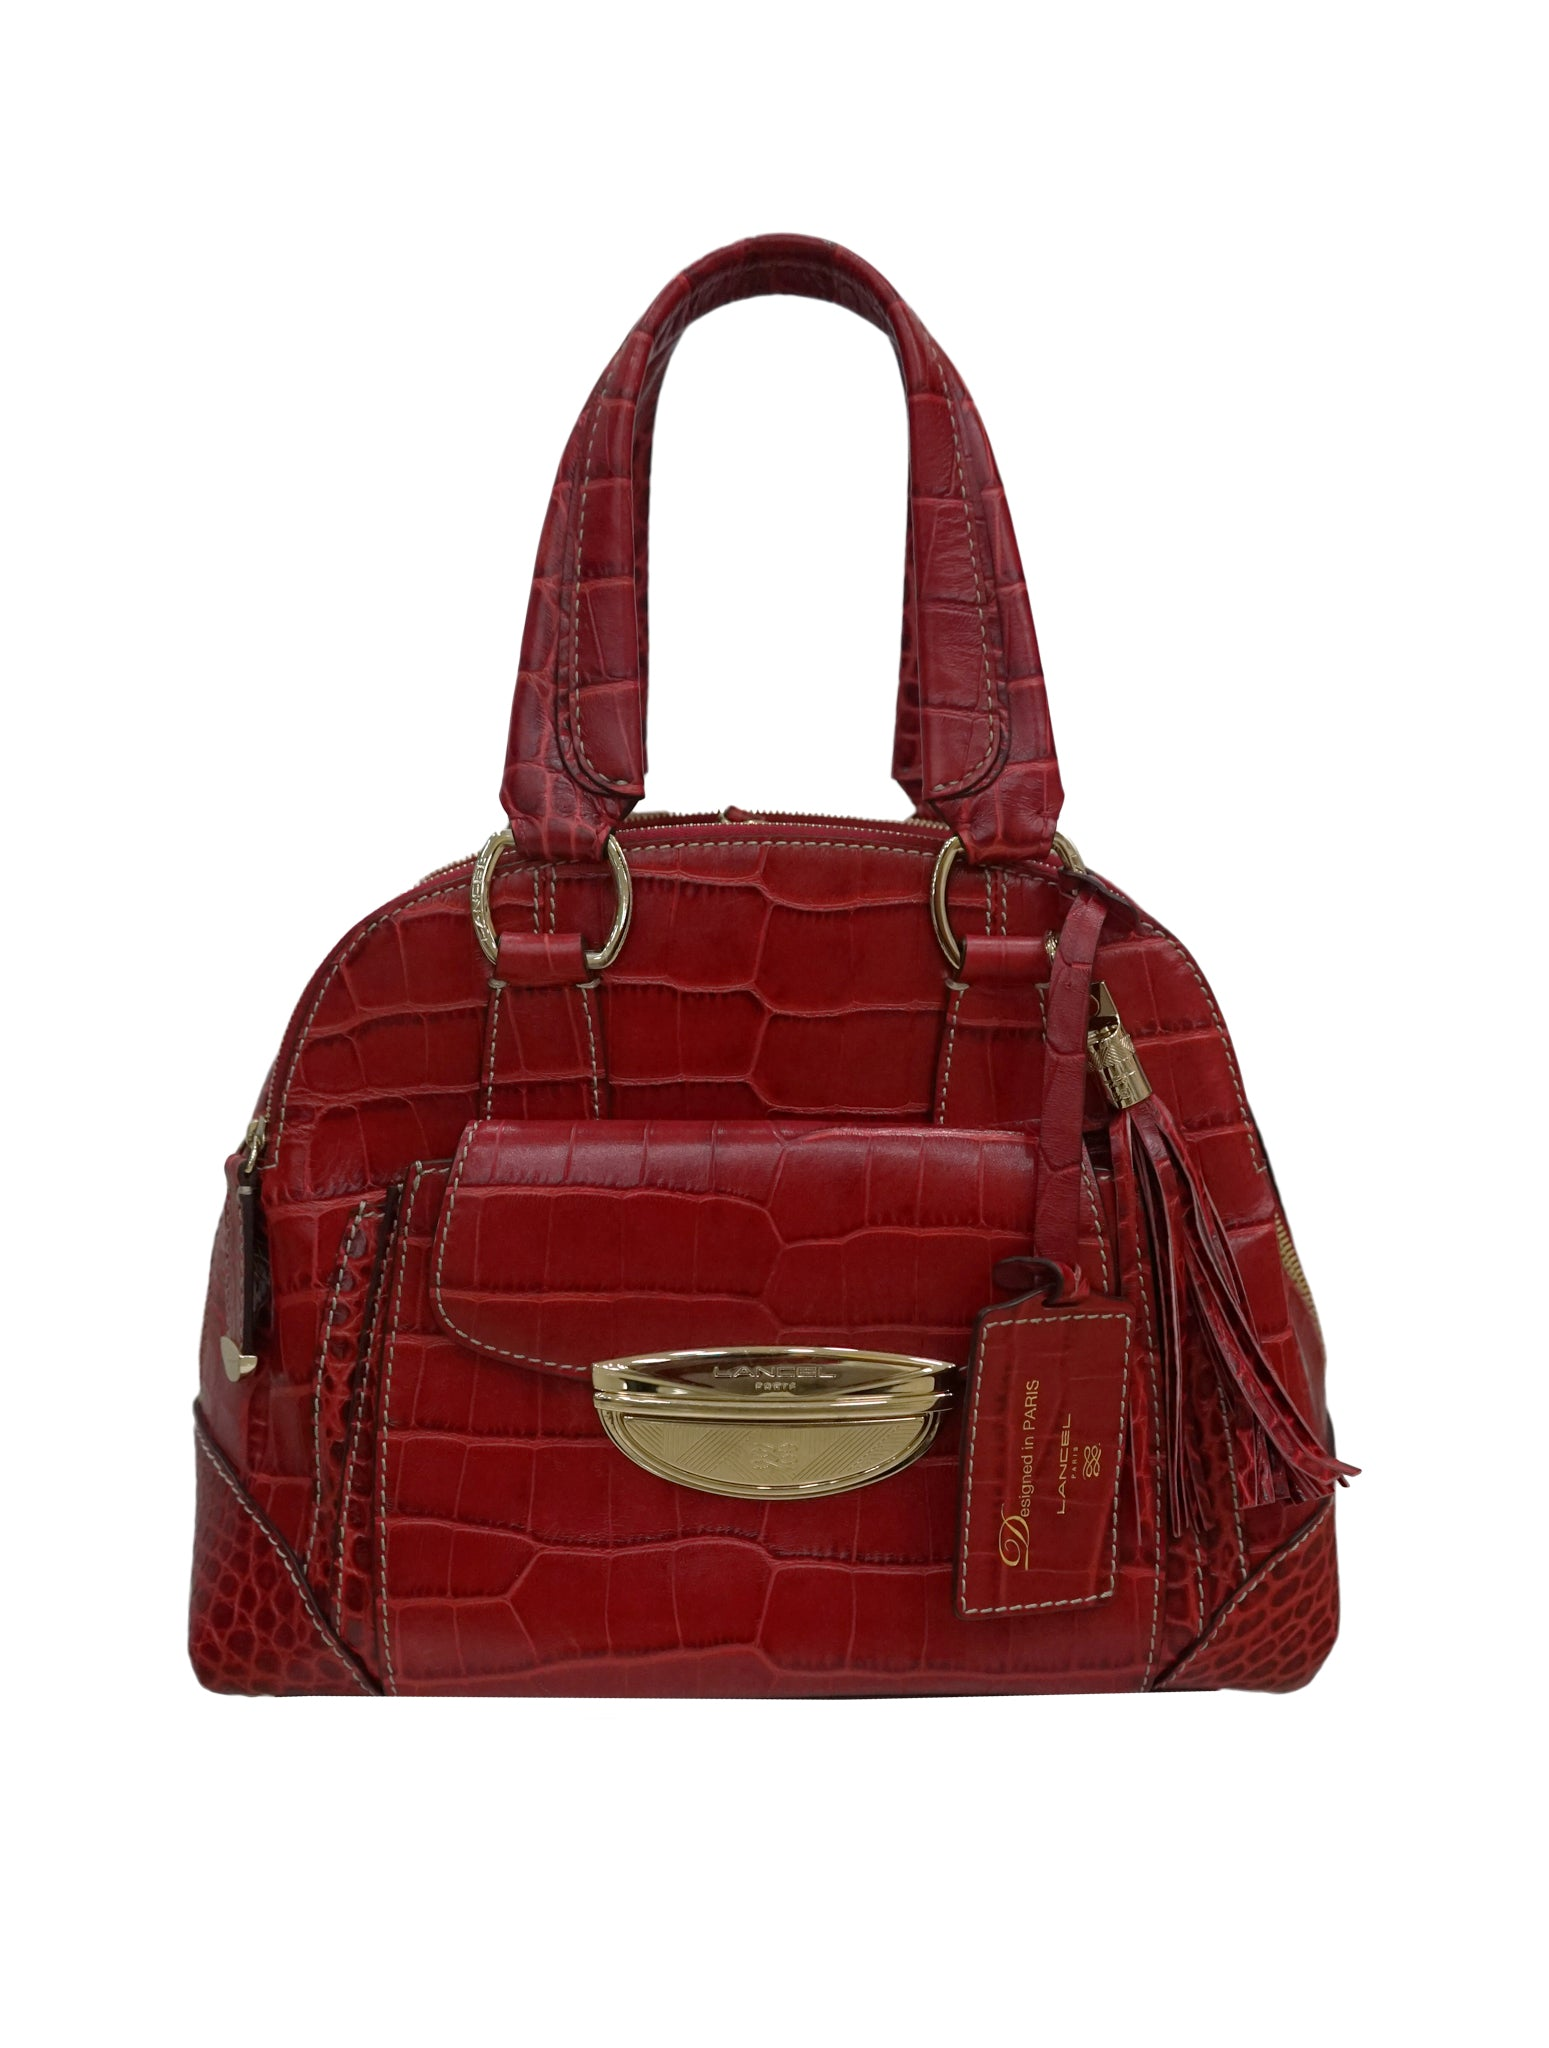 RED EMBOSSED LARGE ADJANI SATCHEL